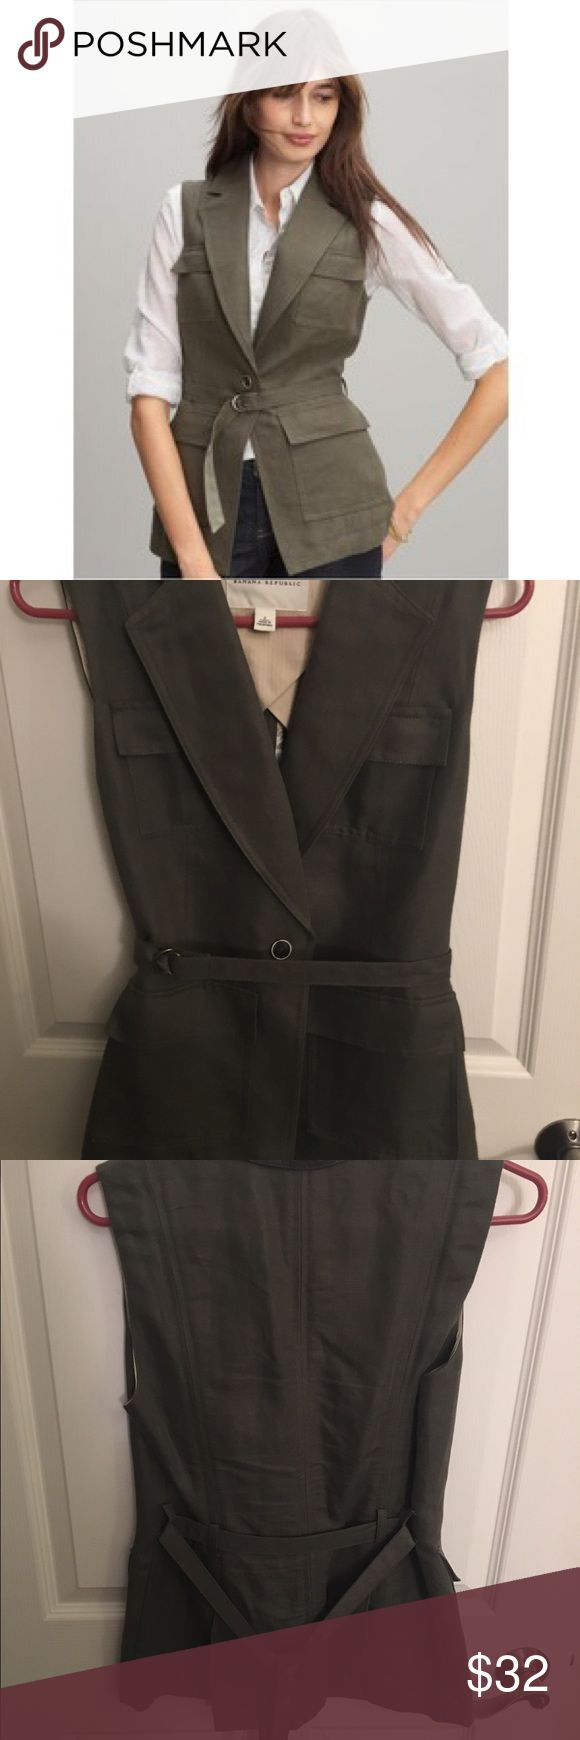 Banana Republic Safari Cargo Vest with Belt Great for a put together look! The added bonus of a belt can really accentuate your waist. Comes with lots of pockets for extra storage! Marked tan and green for colors, but it's really more of an olive color. Banana Republic Jackets & Coats Vests